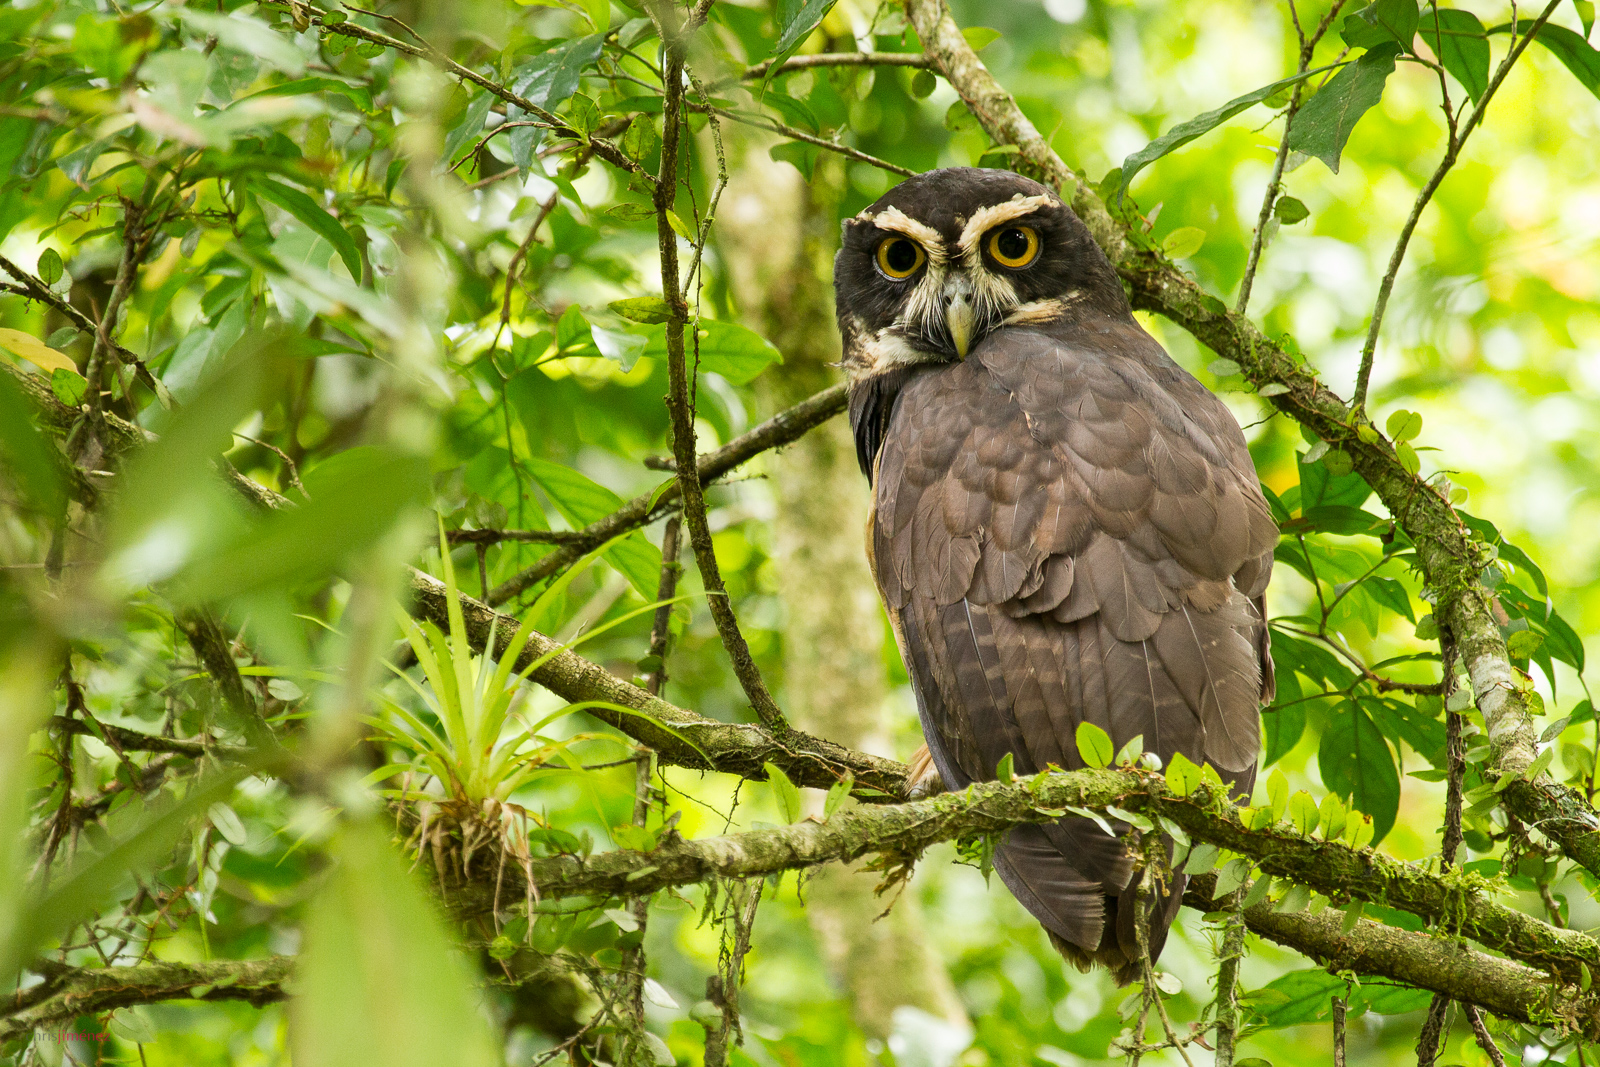 Spectacle Owl perched on a branch at the low lands of Costa Rica